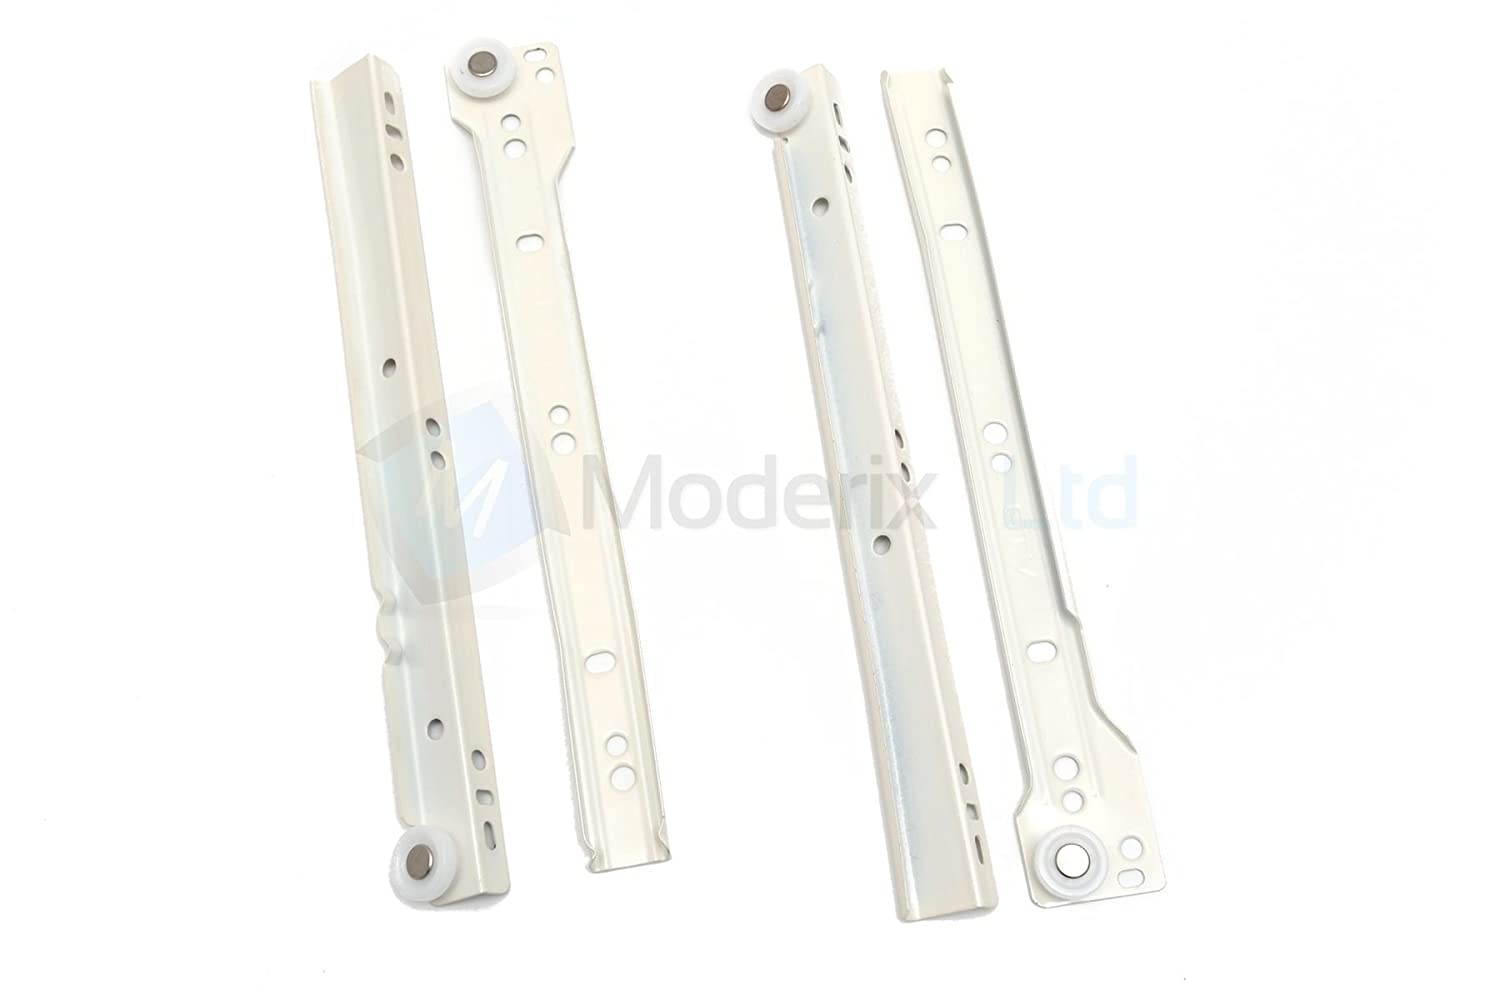 Mfi Replacement Kitchen Doors Drawer Runner Mfi 28mm X 278 Extends To 452mm By Mfi Ball Bearing